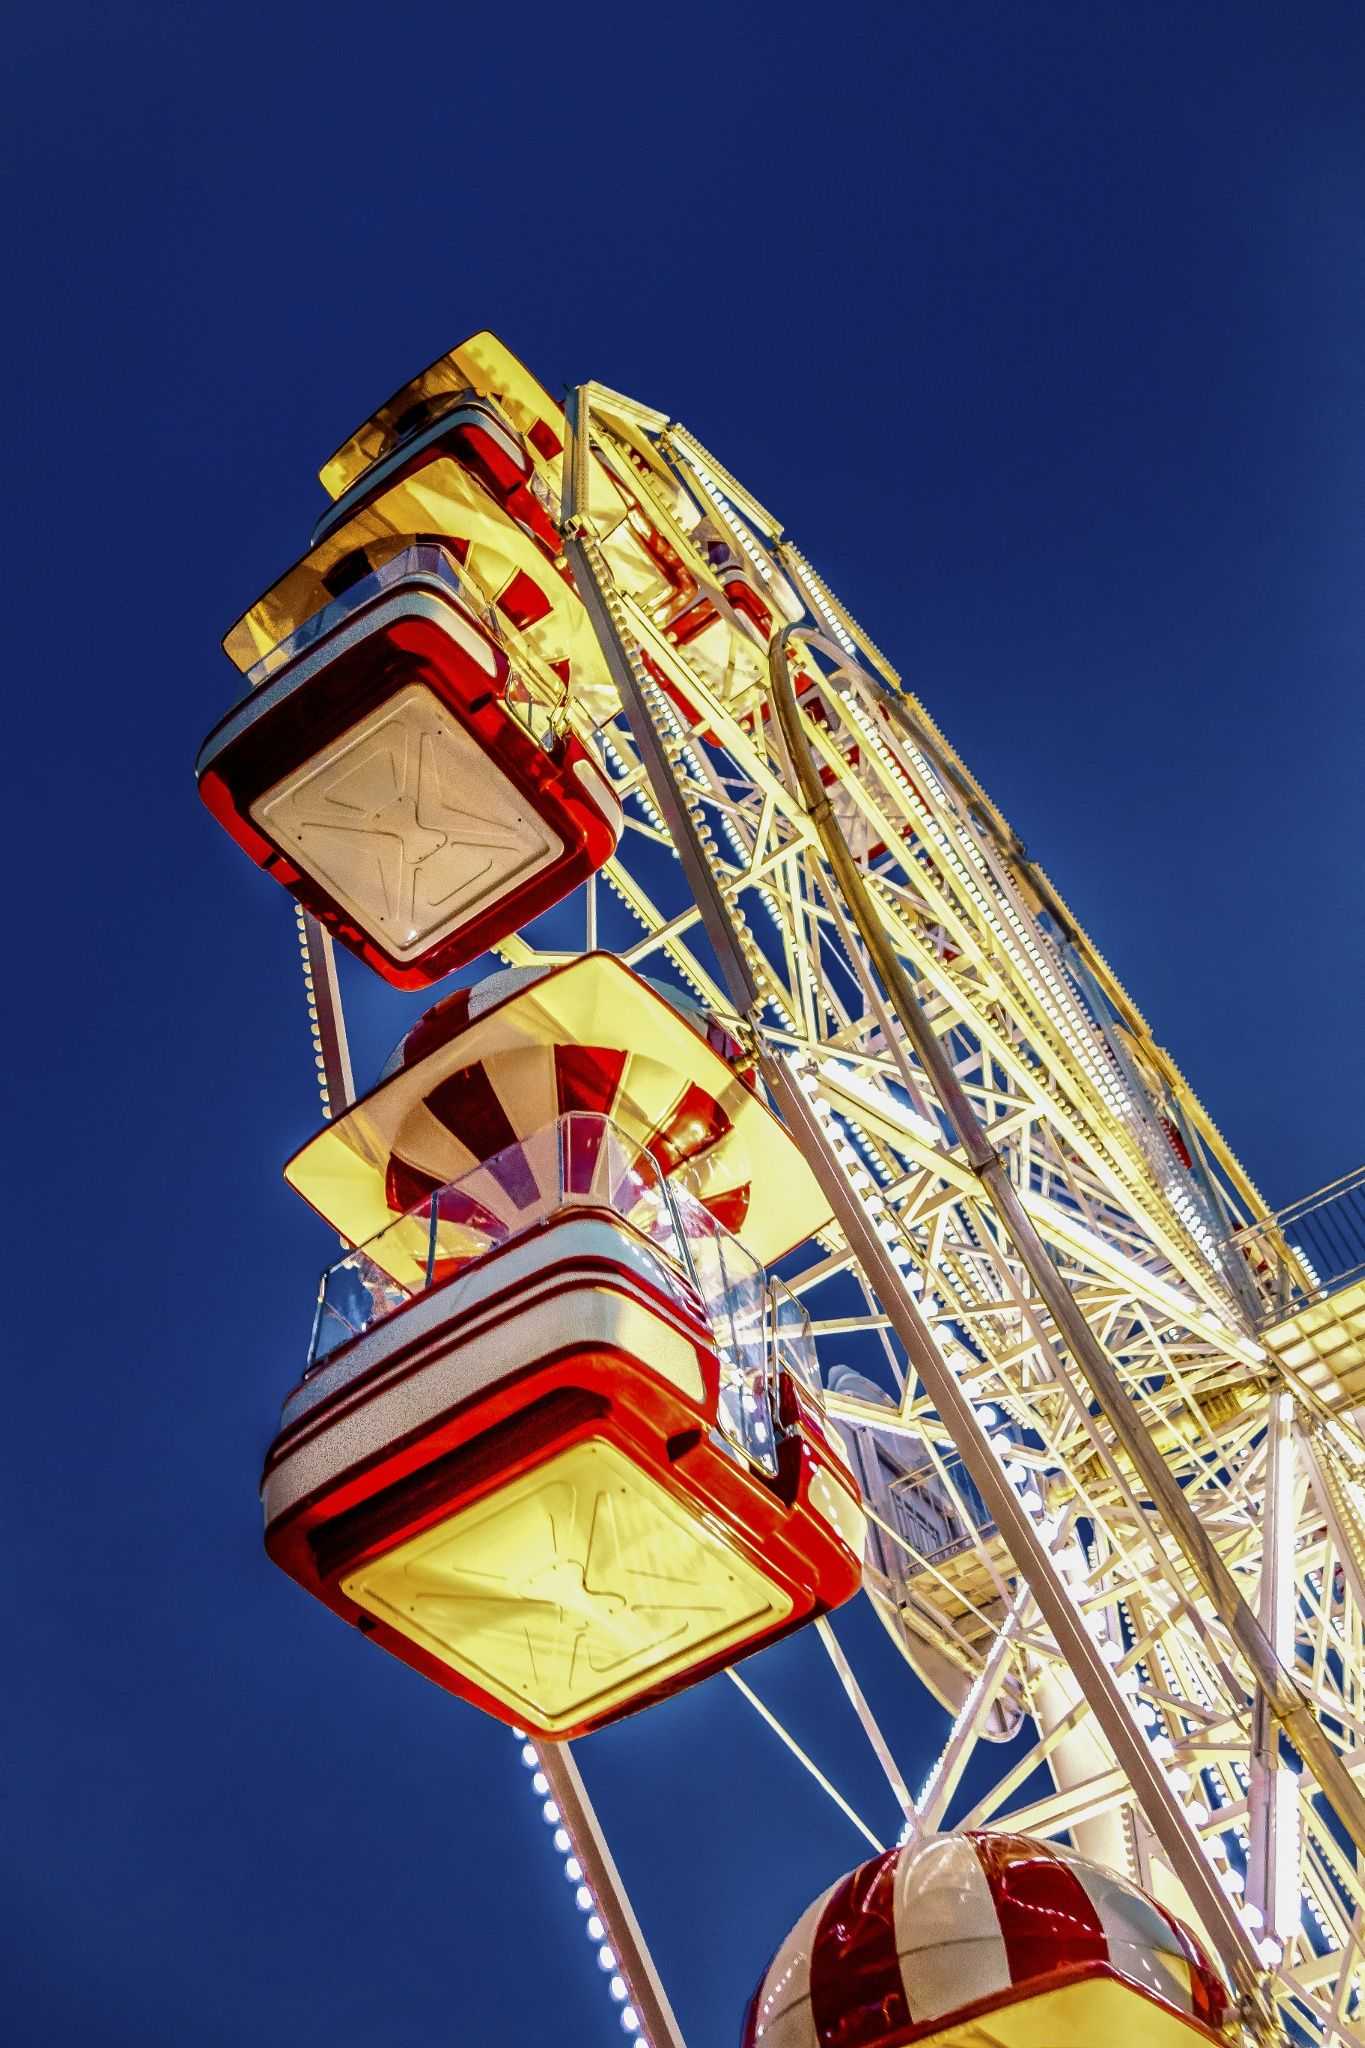 Tivoli Amusement Park Aarhus Ferris Wheel New Version By Morten Rasmussen On 500px